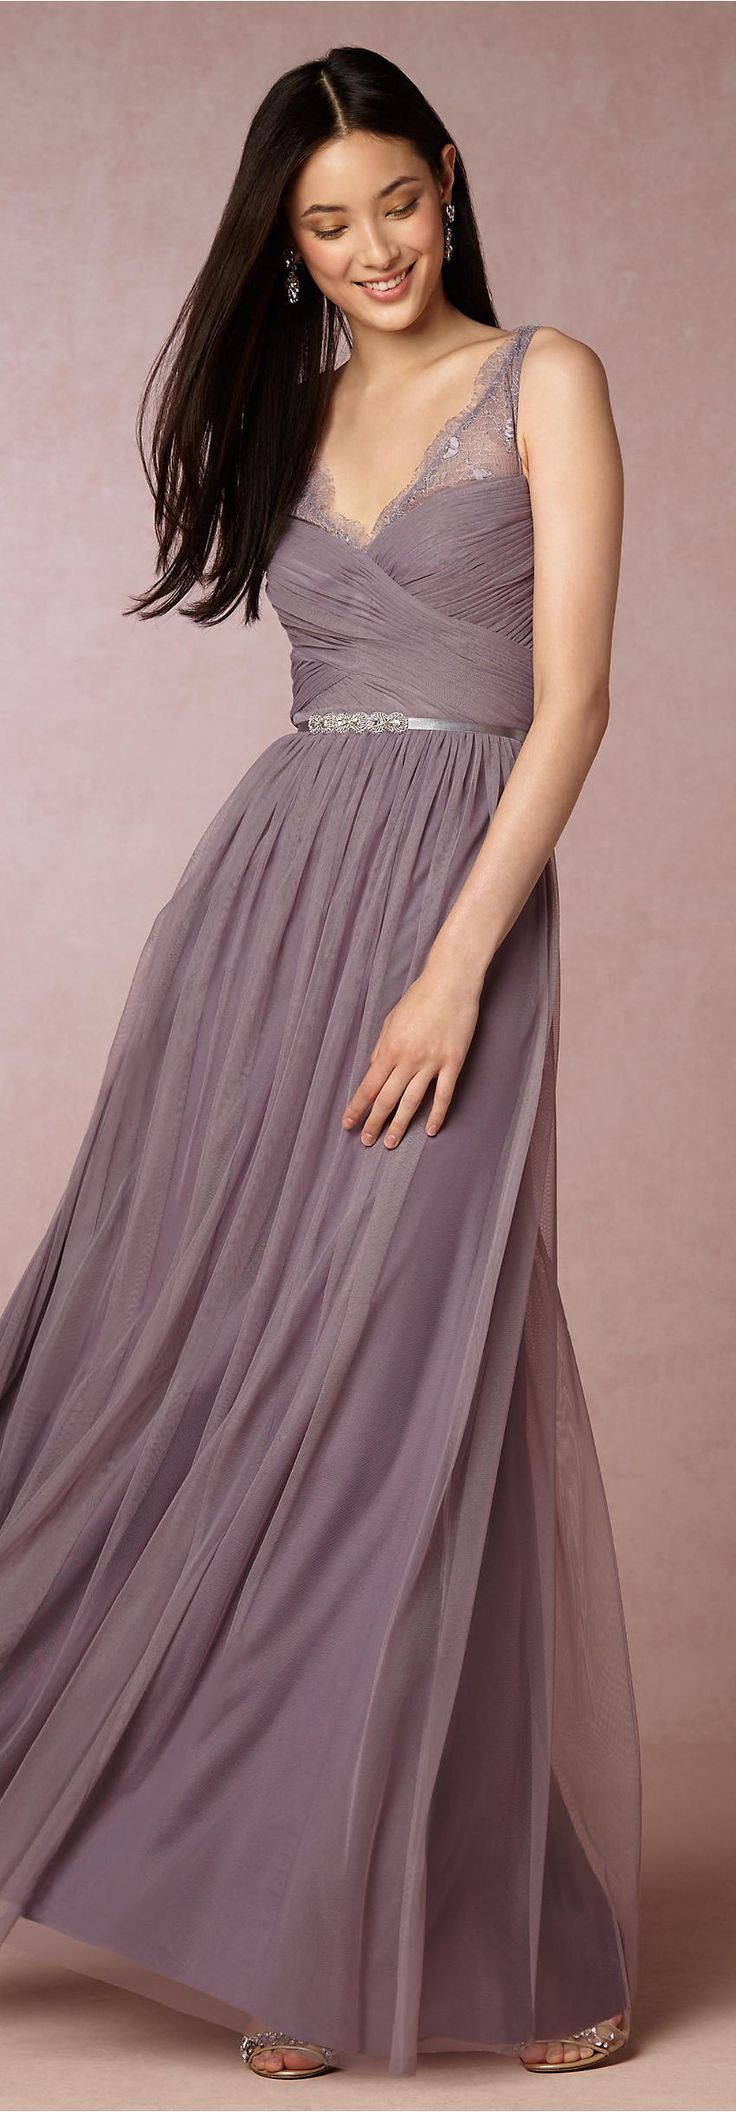 BHLDN Bridesmaid Dress Fall 2016 | Floor Purple Sheath V-Neck $$$ ($251-350)